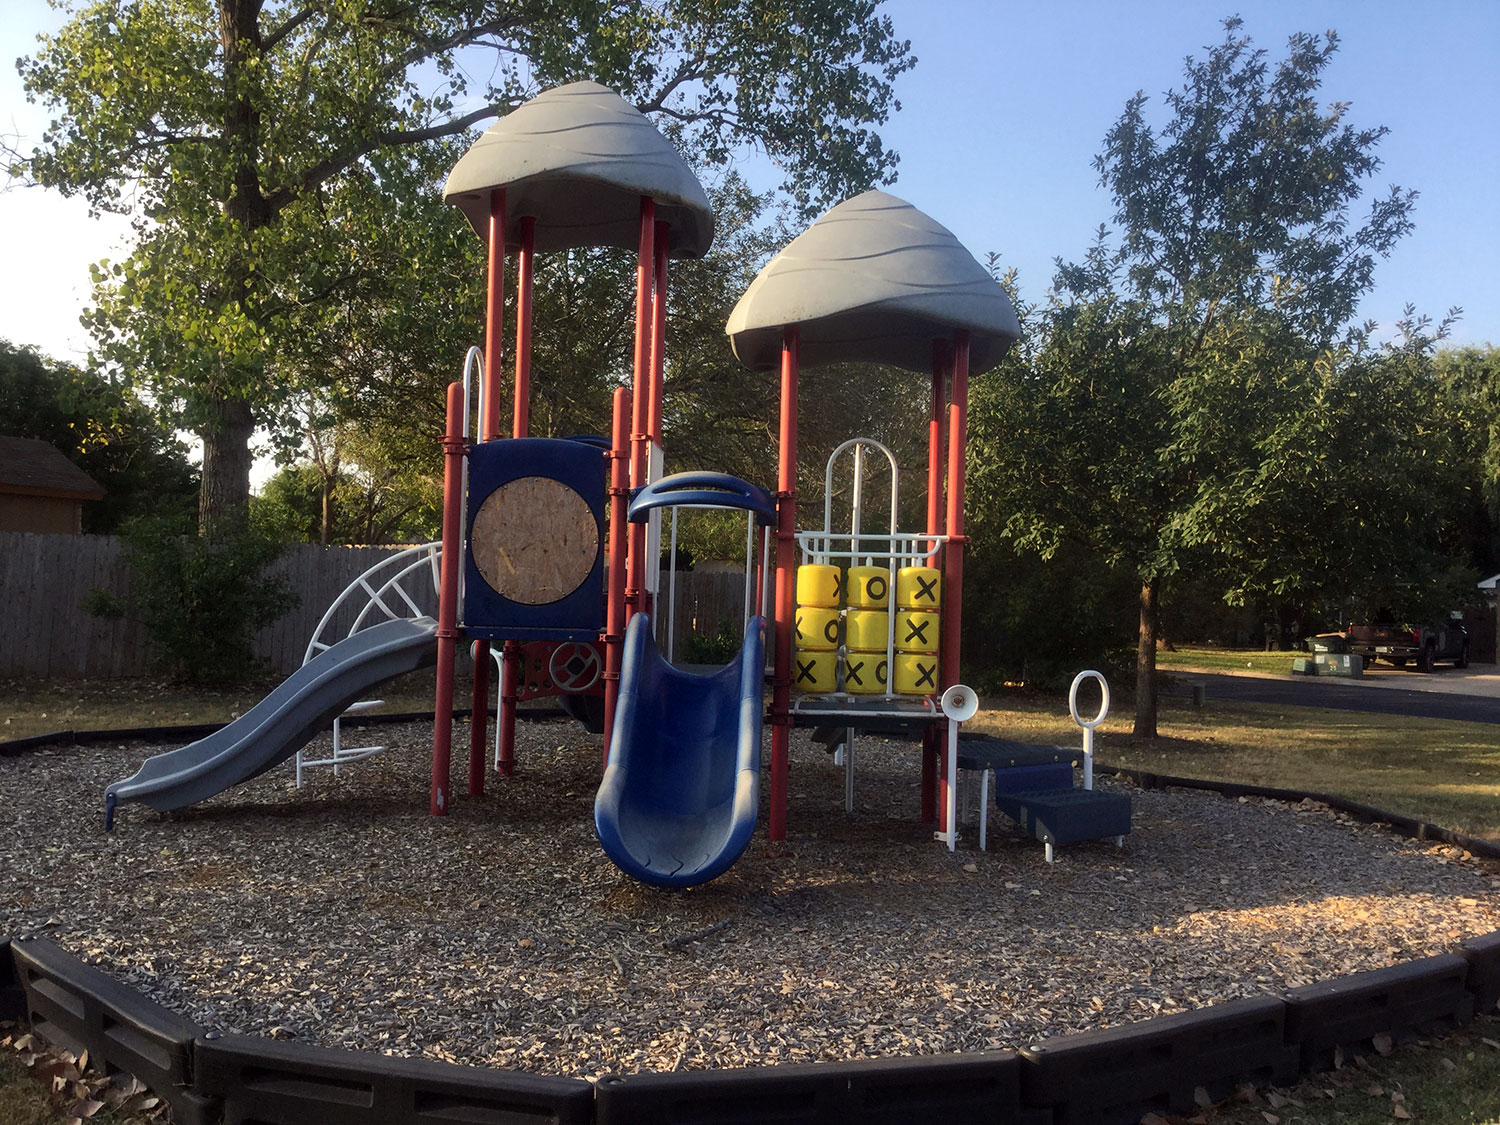 Playscape at Raintree Park in Georgetown, TX